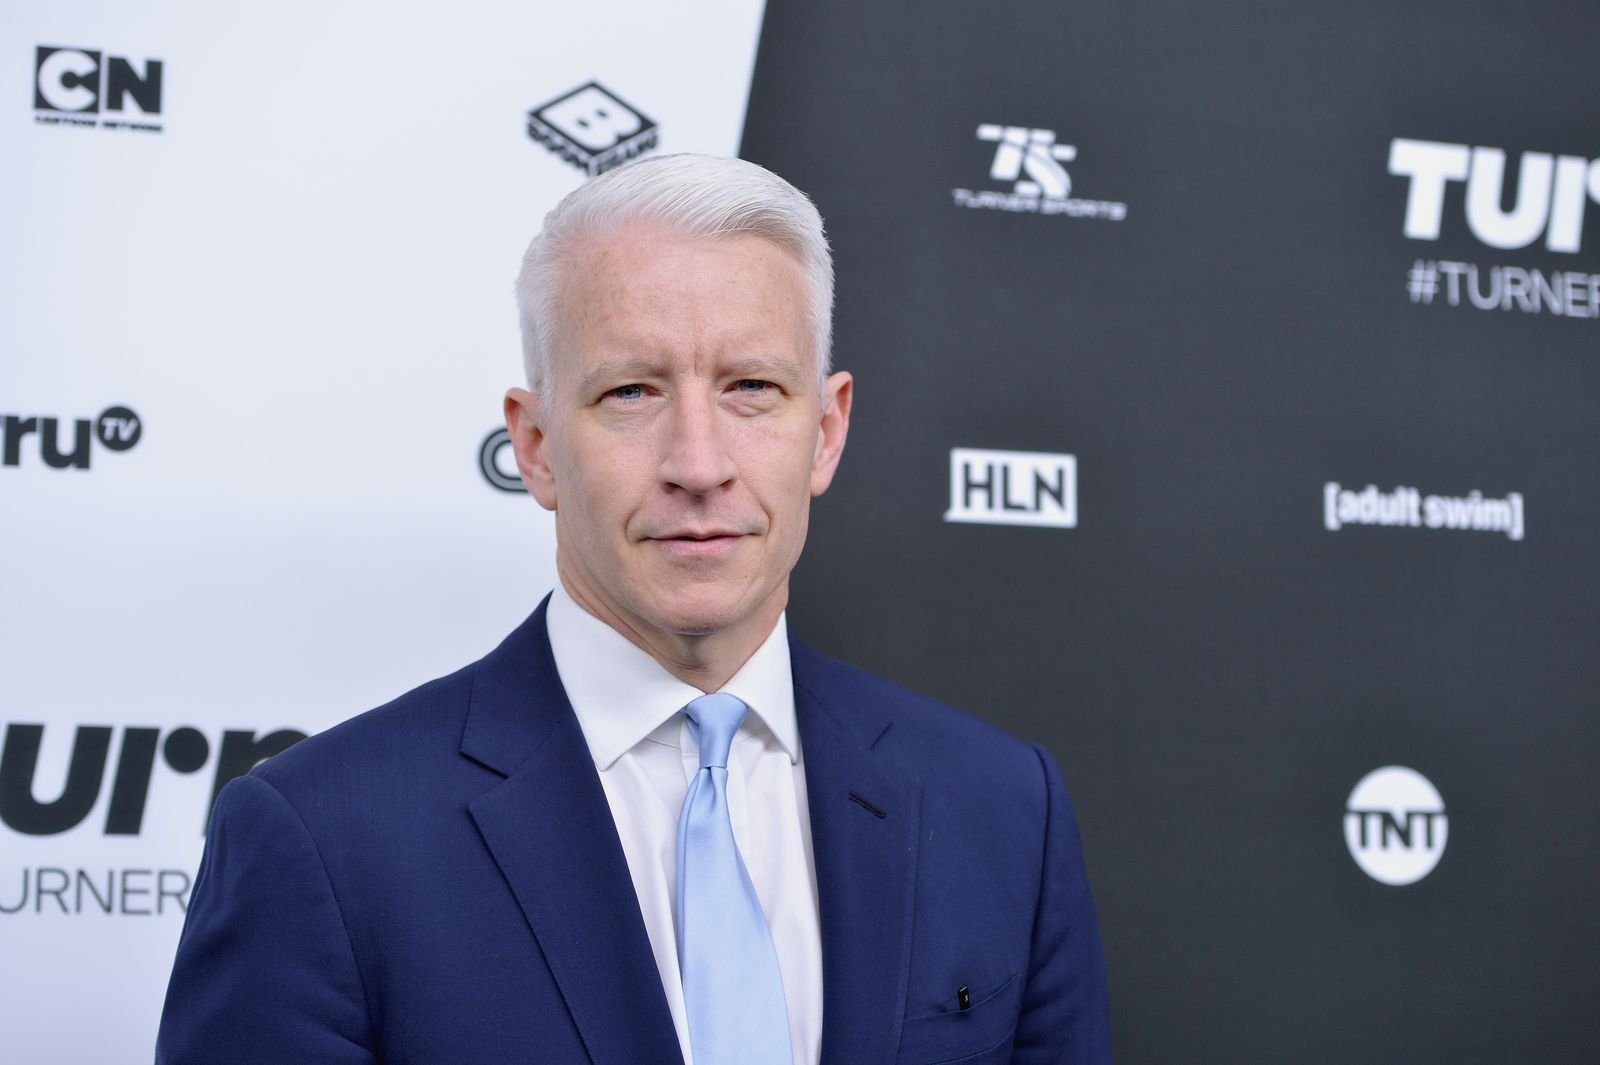 Anderson Cooper at the Turner Upfront 2016 at Nick & Stef's Steakhouse on May 18, 2016 in New York City | Photo: Getty Images